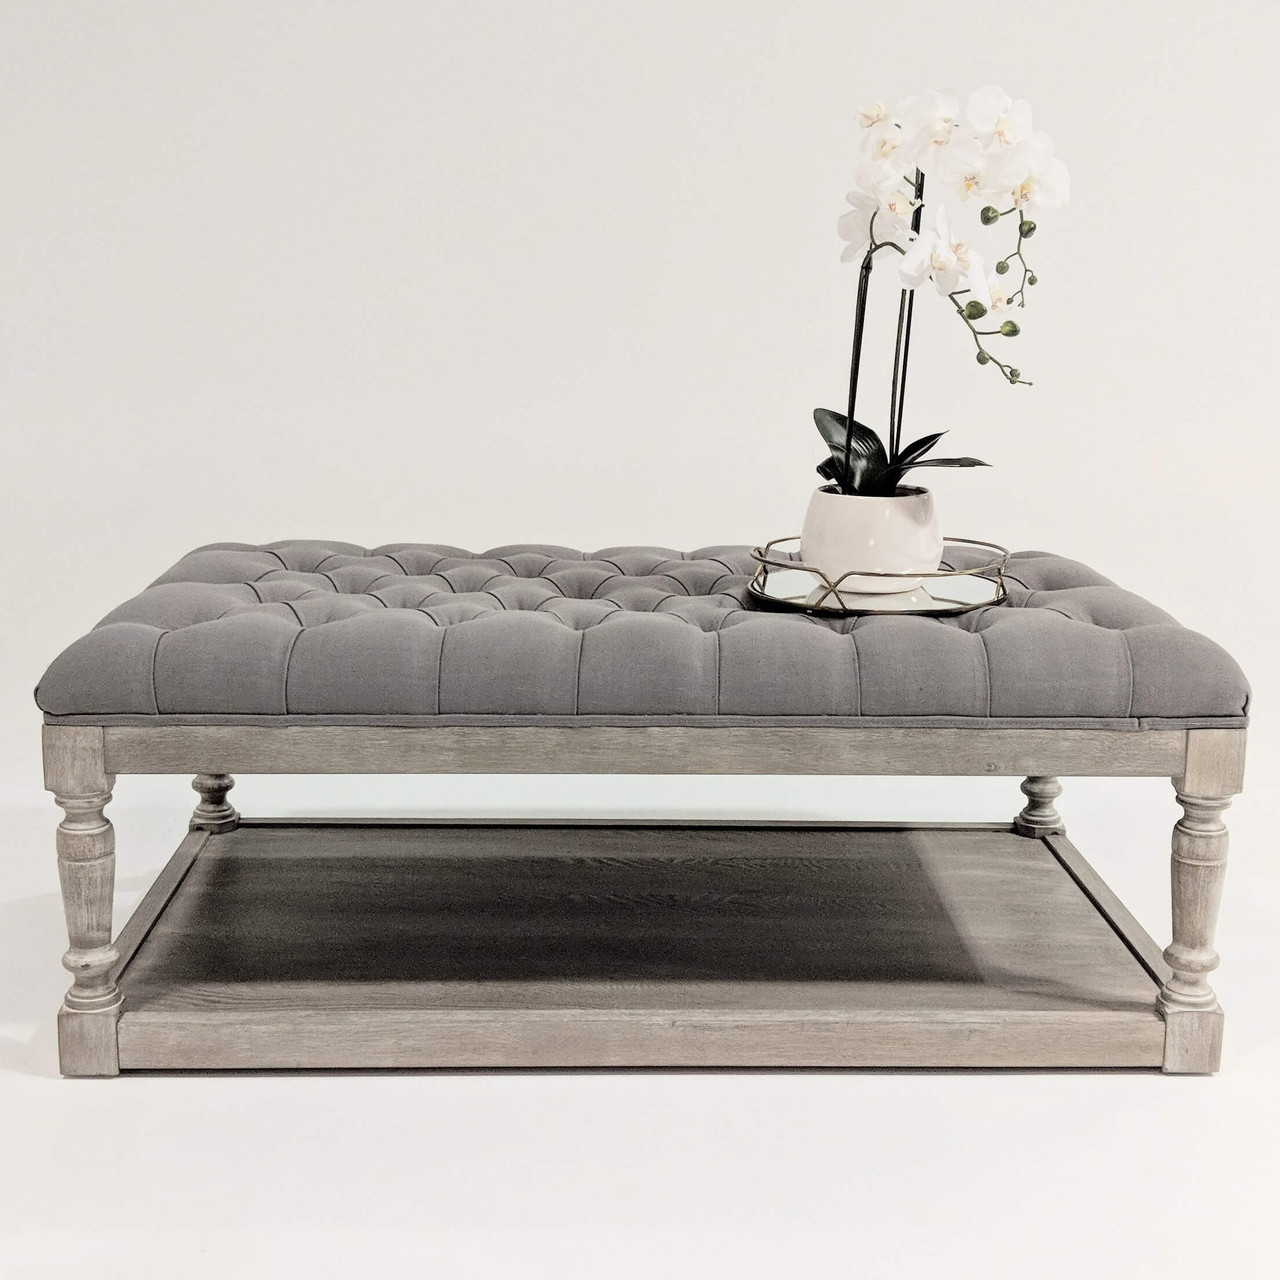 hamptons style ottoman coffee table tufted french linen button chesterfield whitewash oak rectangle grey